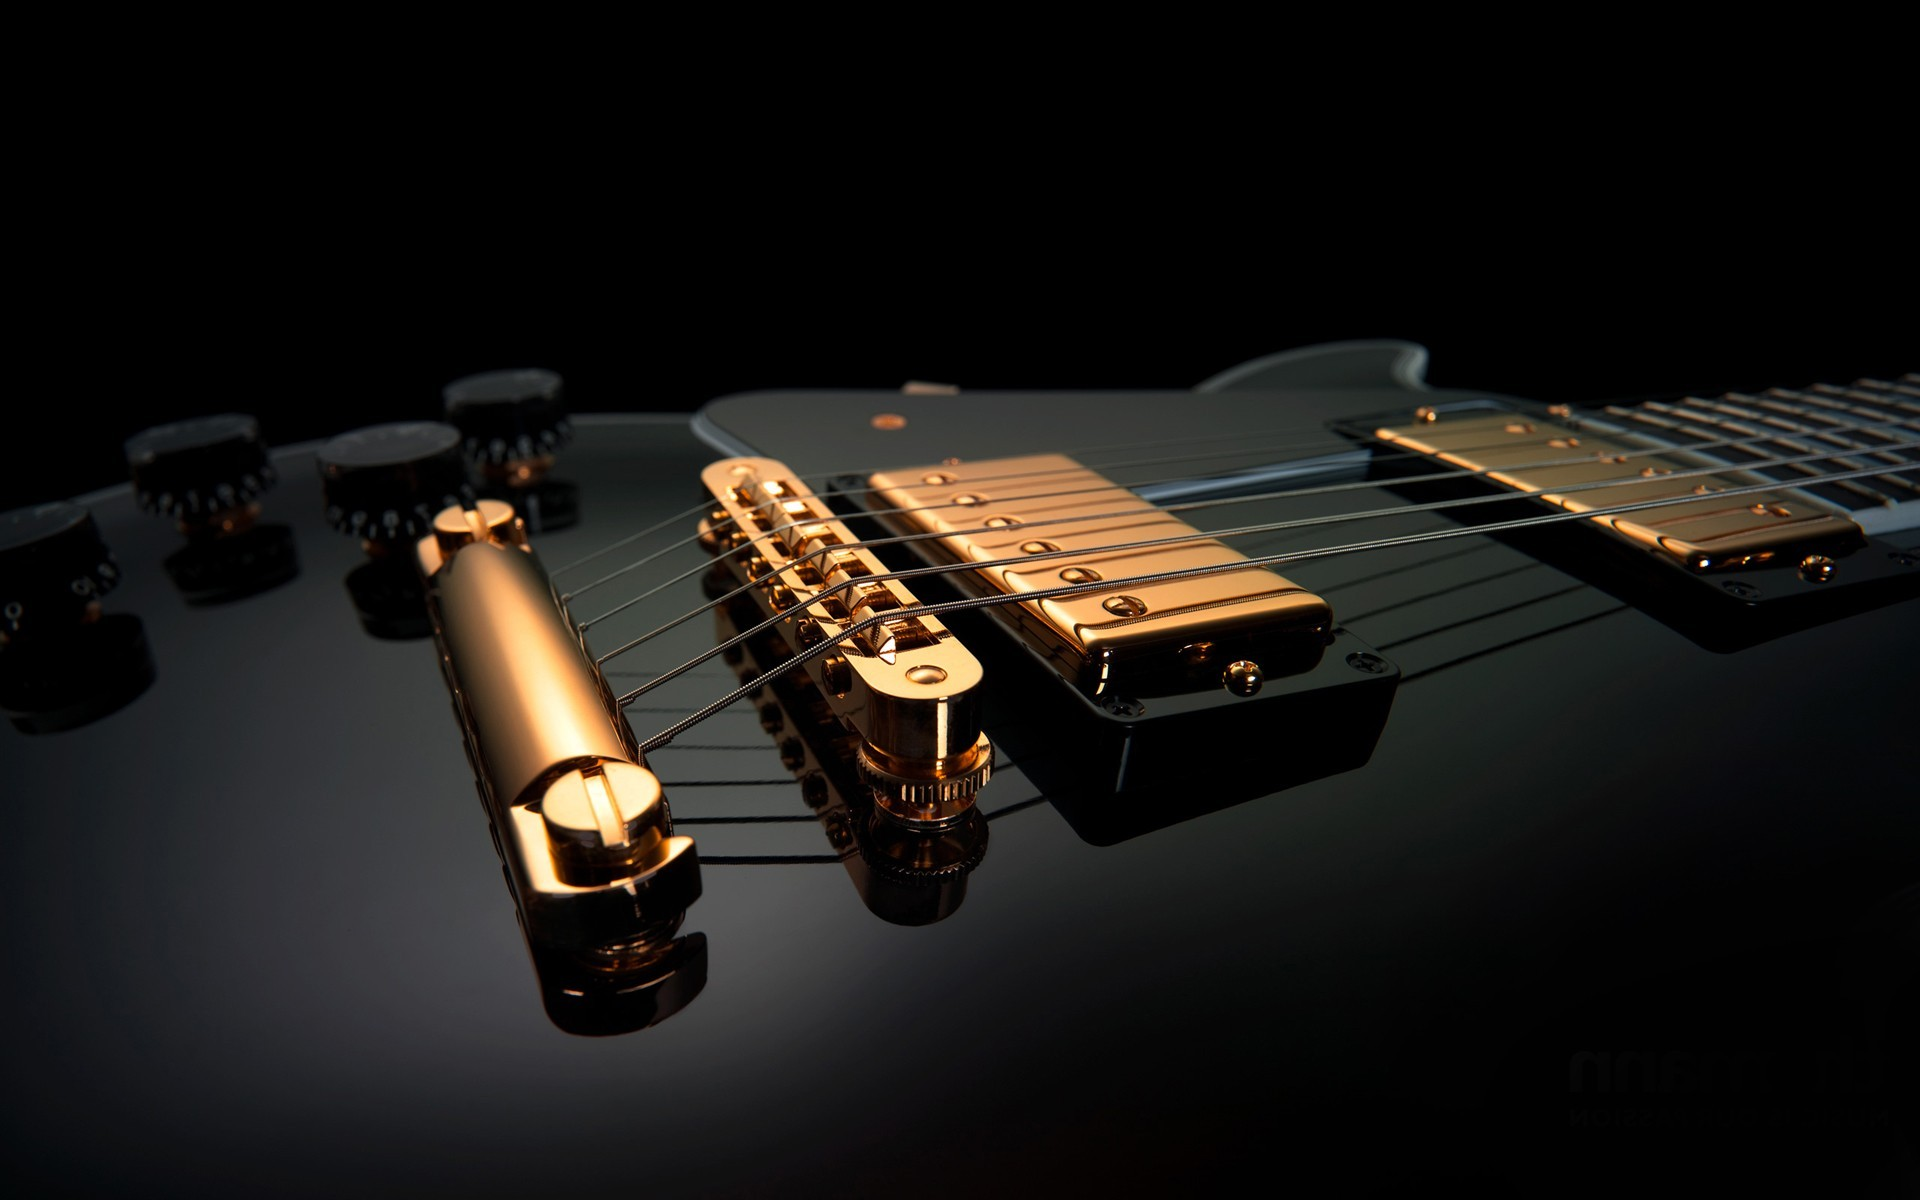 22 Fantastic Hd Guitar Wallpapers